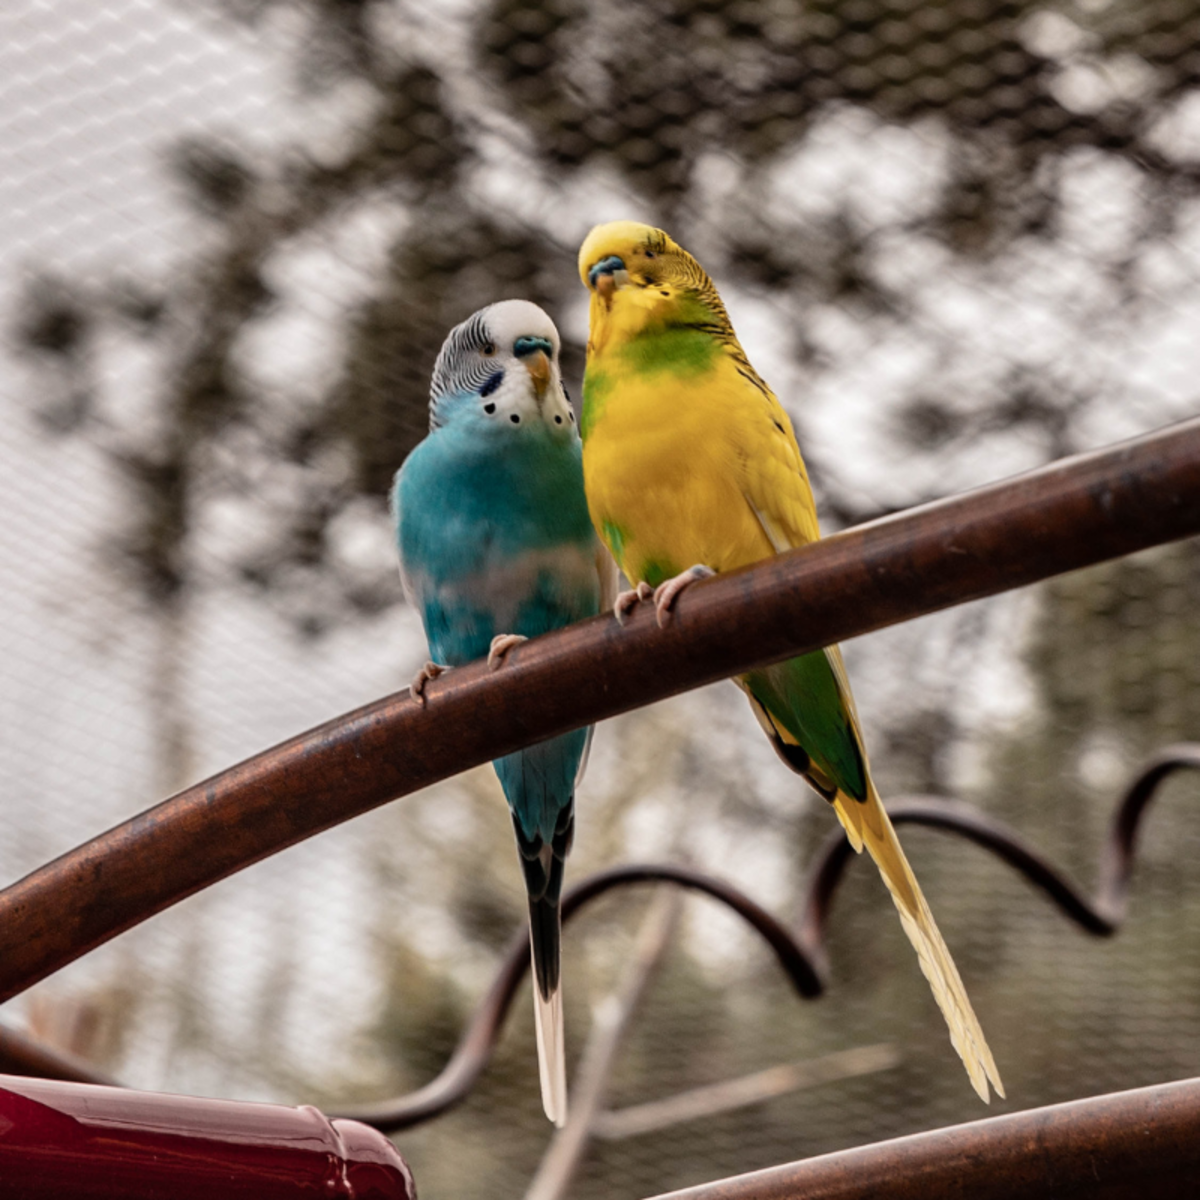 Whenever you give your budgie a new food, watch for signs of distress that could indicate an adverse reaction.